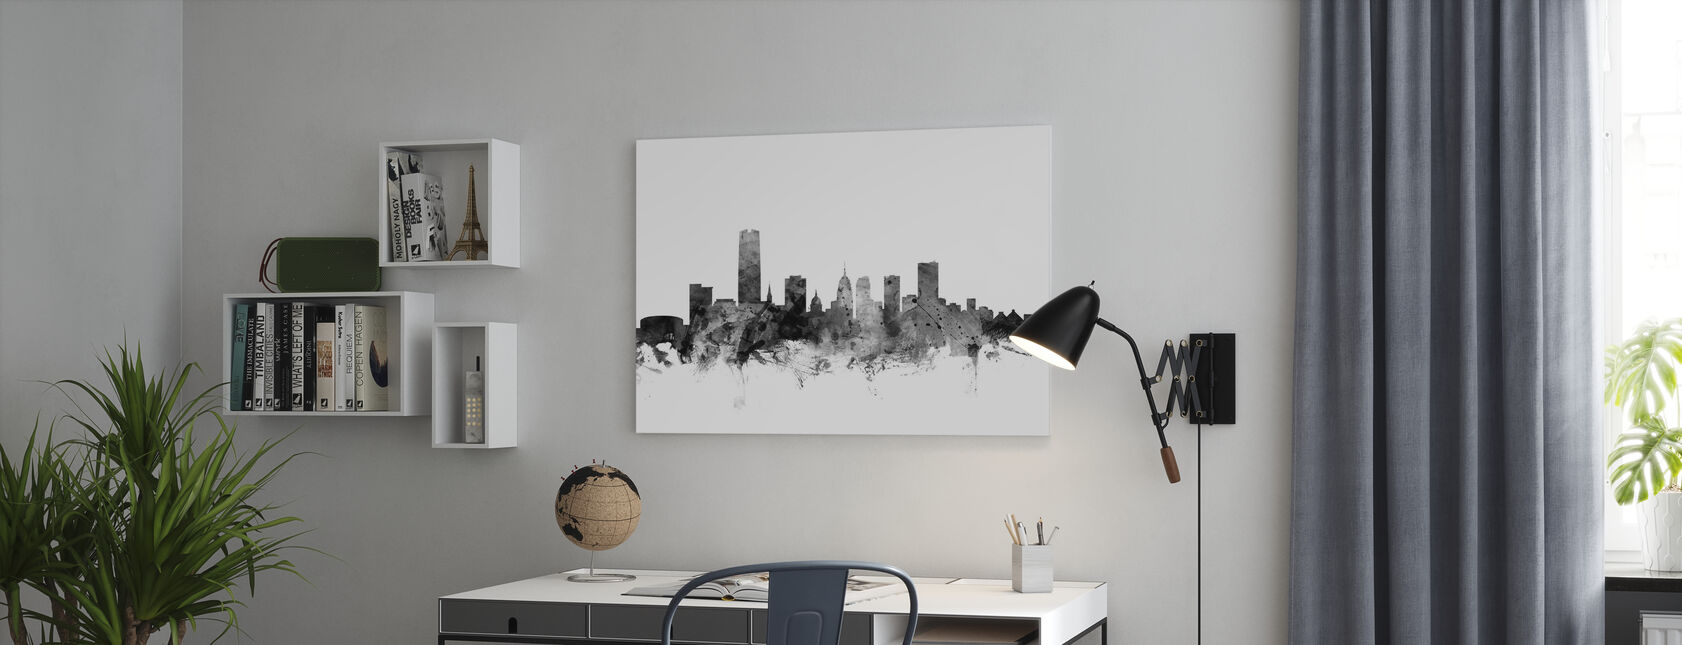 Oklahoma City Skyline Black - Canvas print - Office